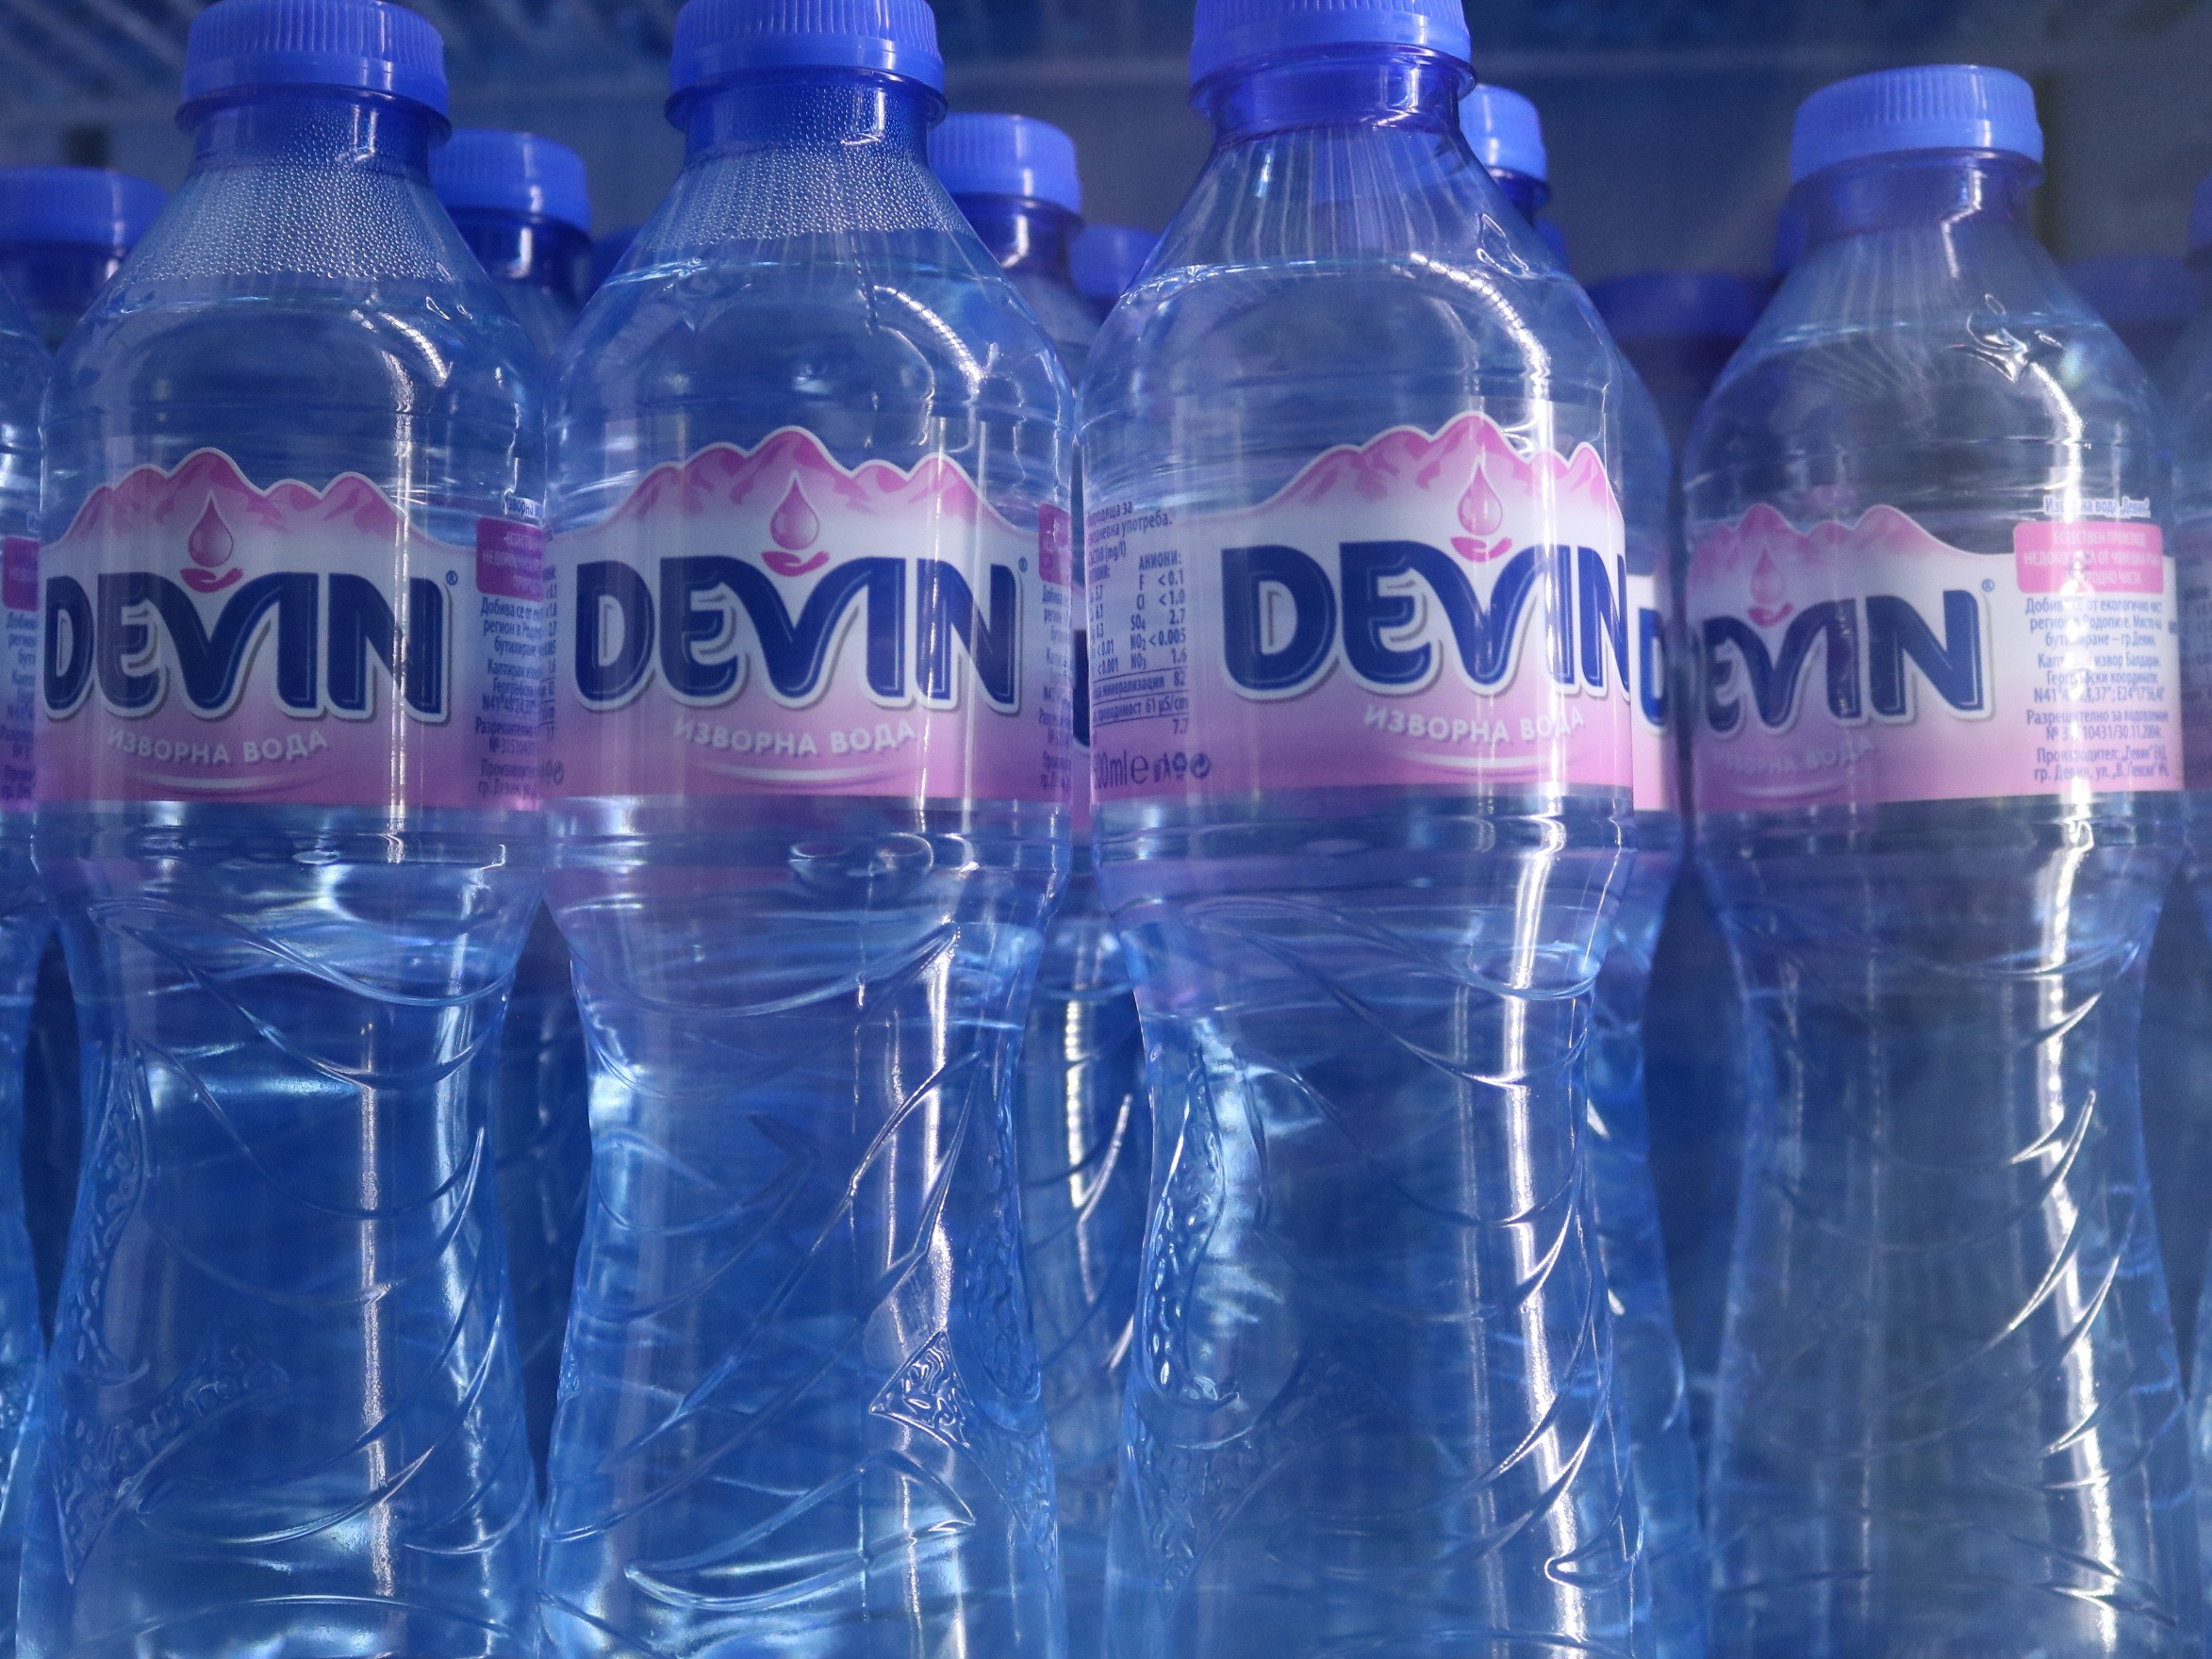 Devin JSC donates over 100,000 bottles of water to the Bulgarian Red Cross